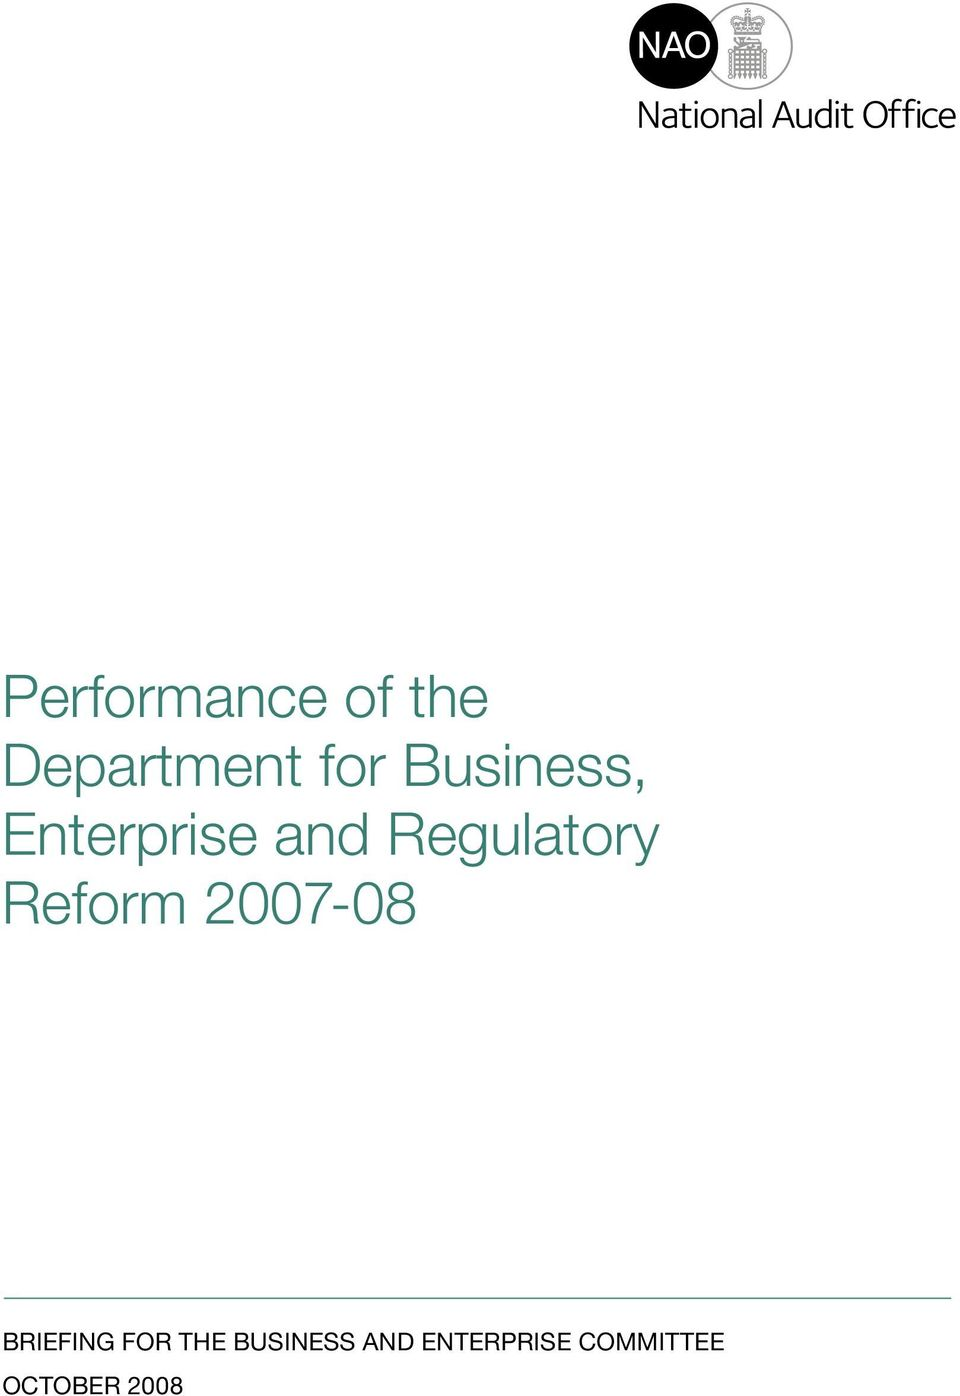 Reform 2007-08 briefing for the